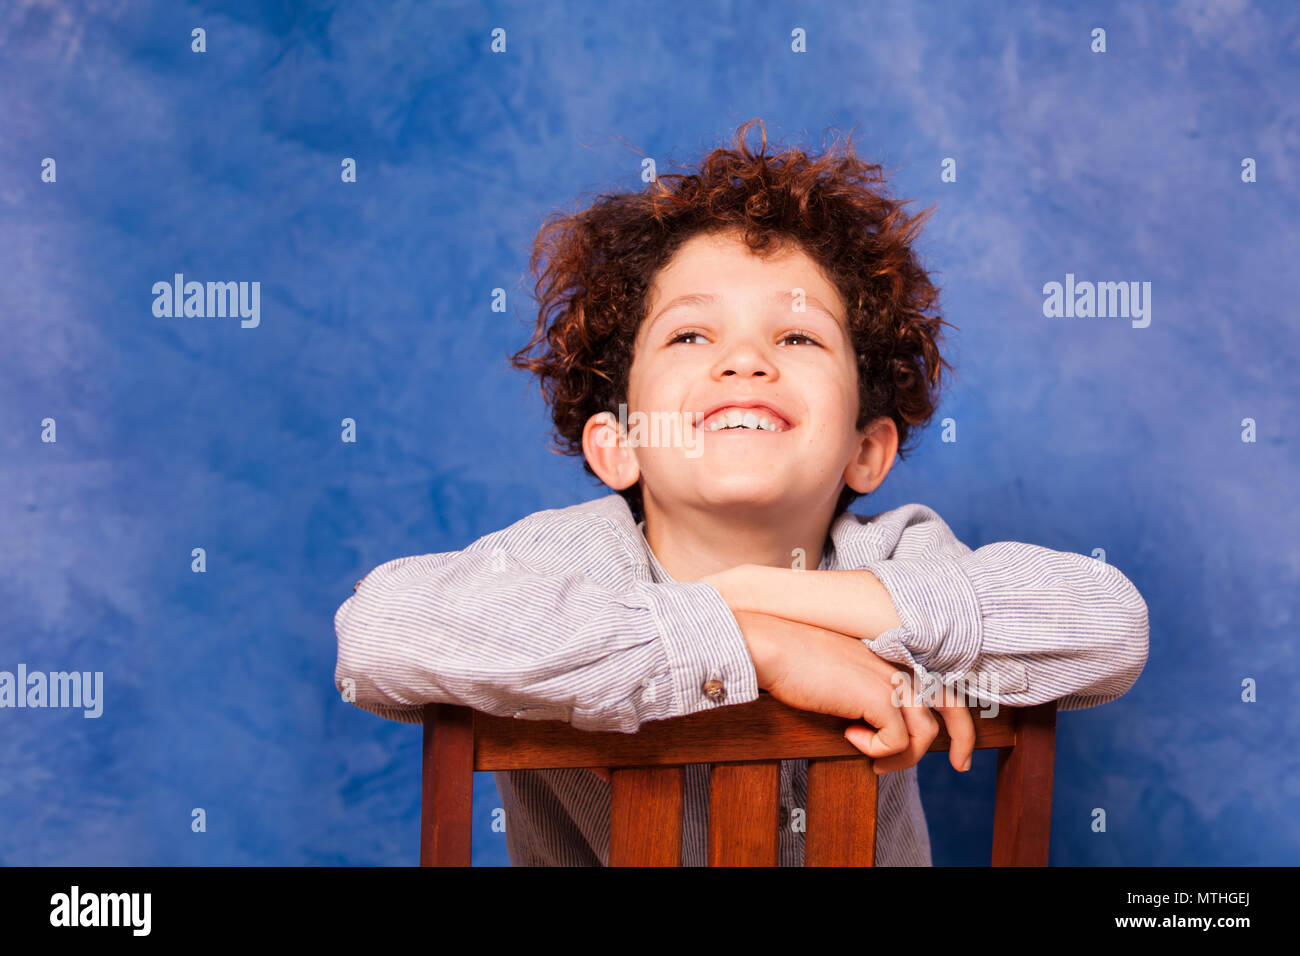 Happy preteen boy with curly hair looking upward while sitting backwards on wooden chair against blue background - Stock Image